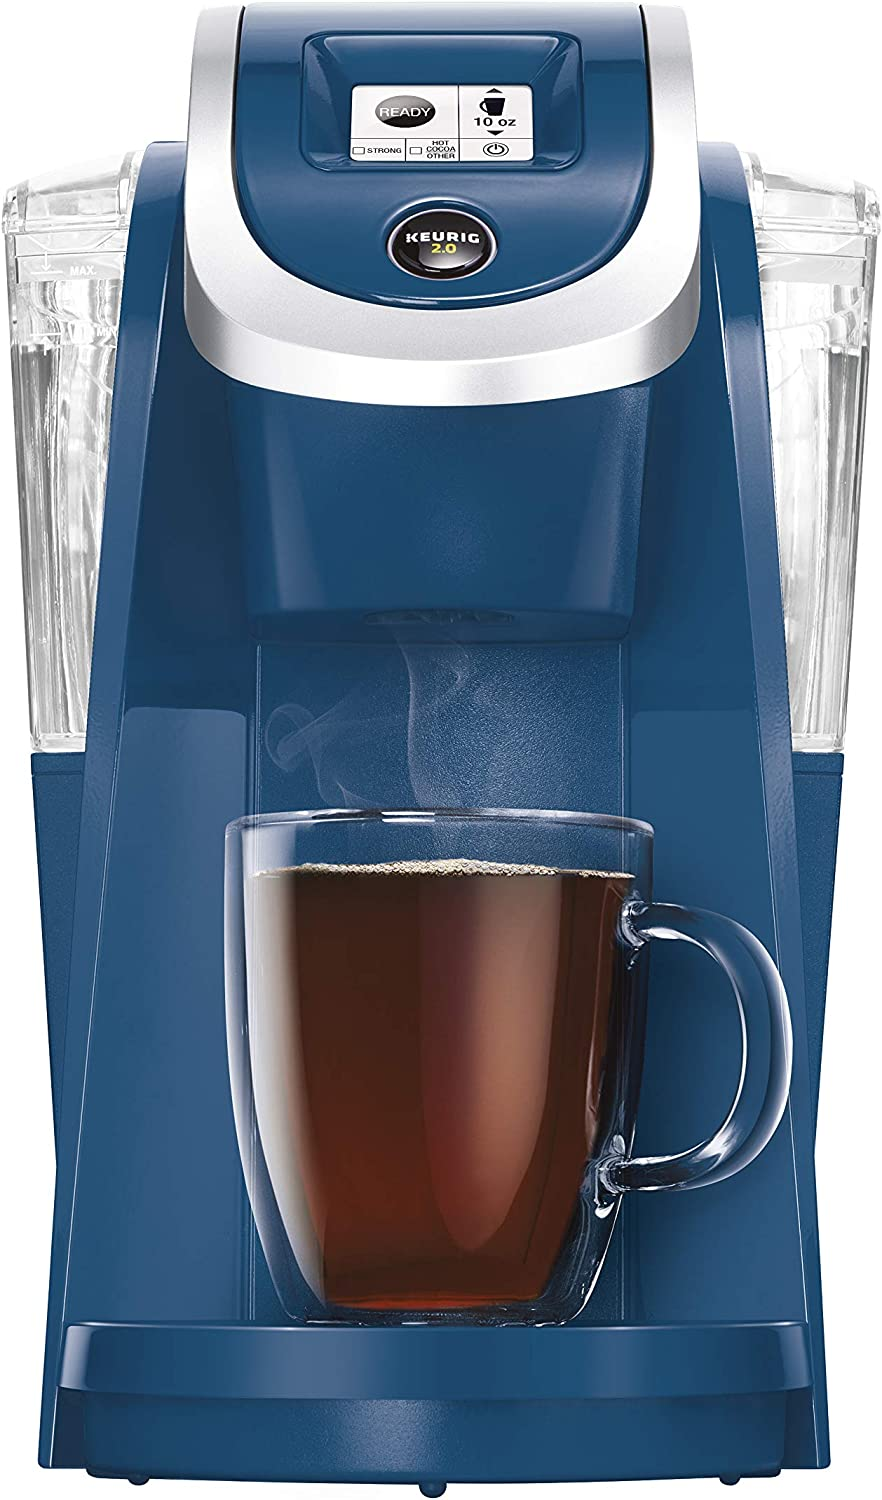 Keurig K200 Coffee Maker, Single Serve K-Cup Pod Coffee Brewer, With Strength Control, Denim (Renewed)